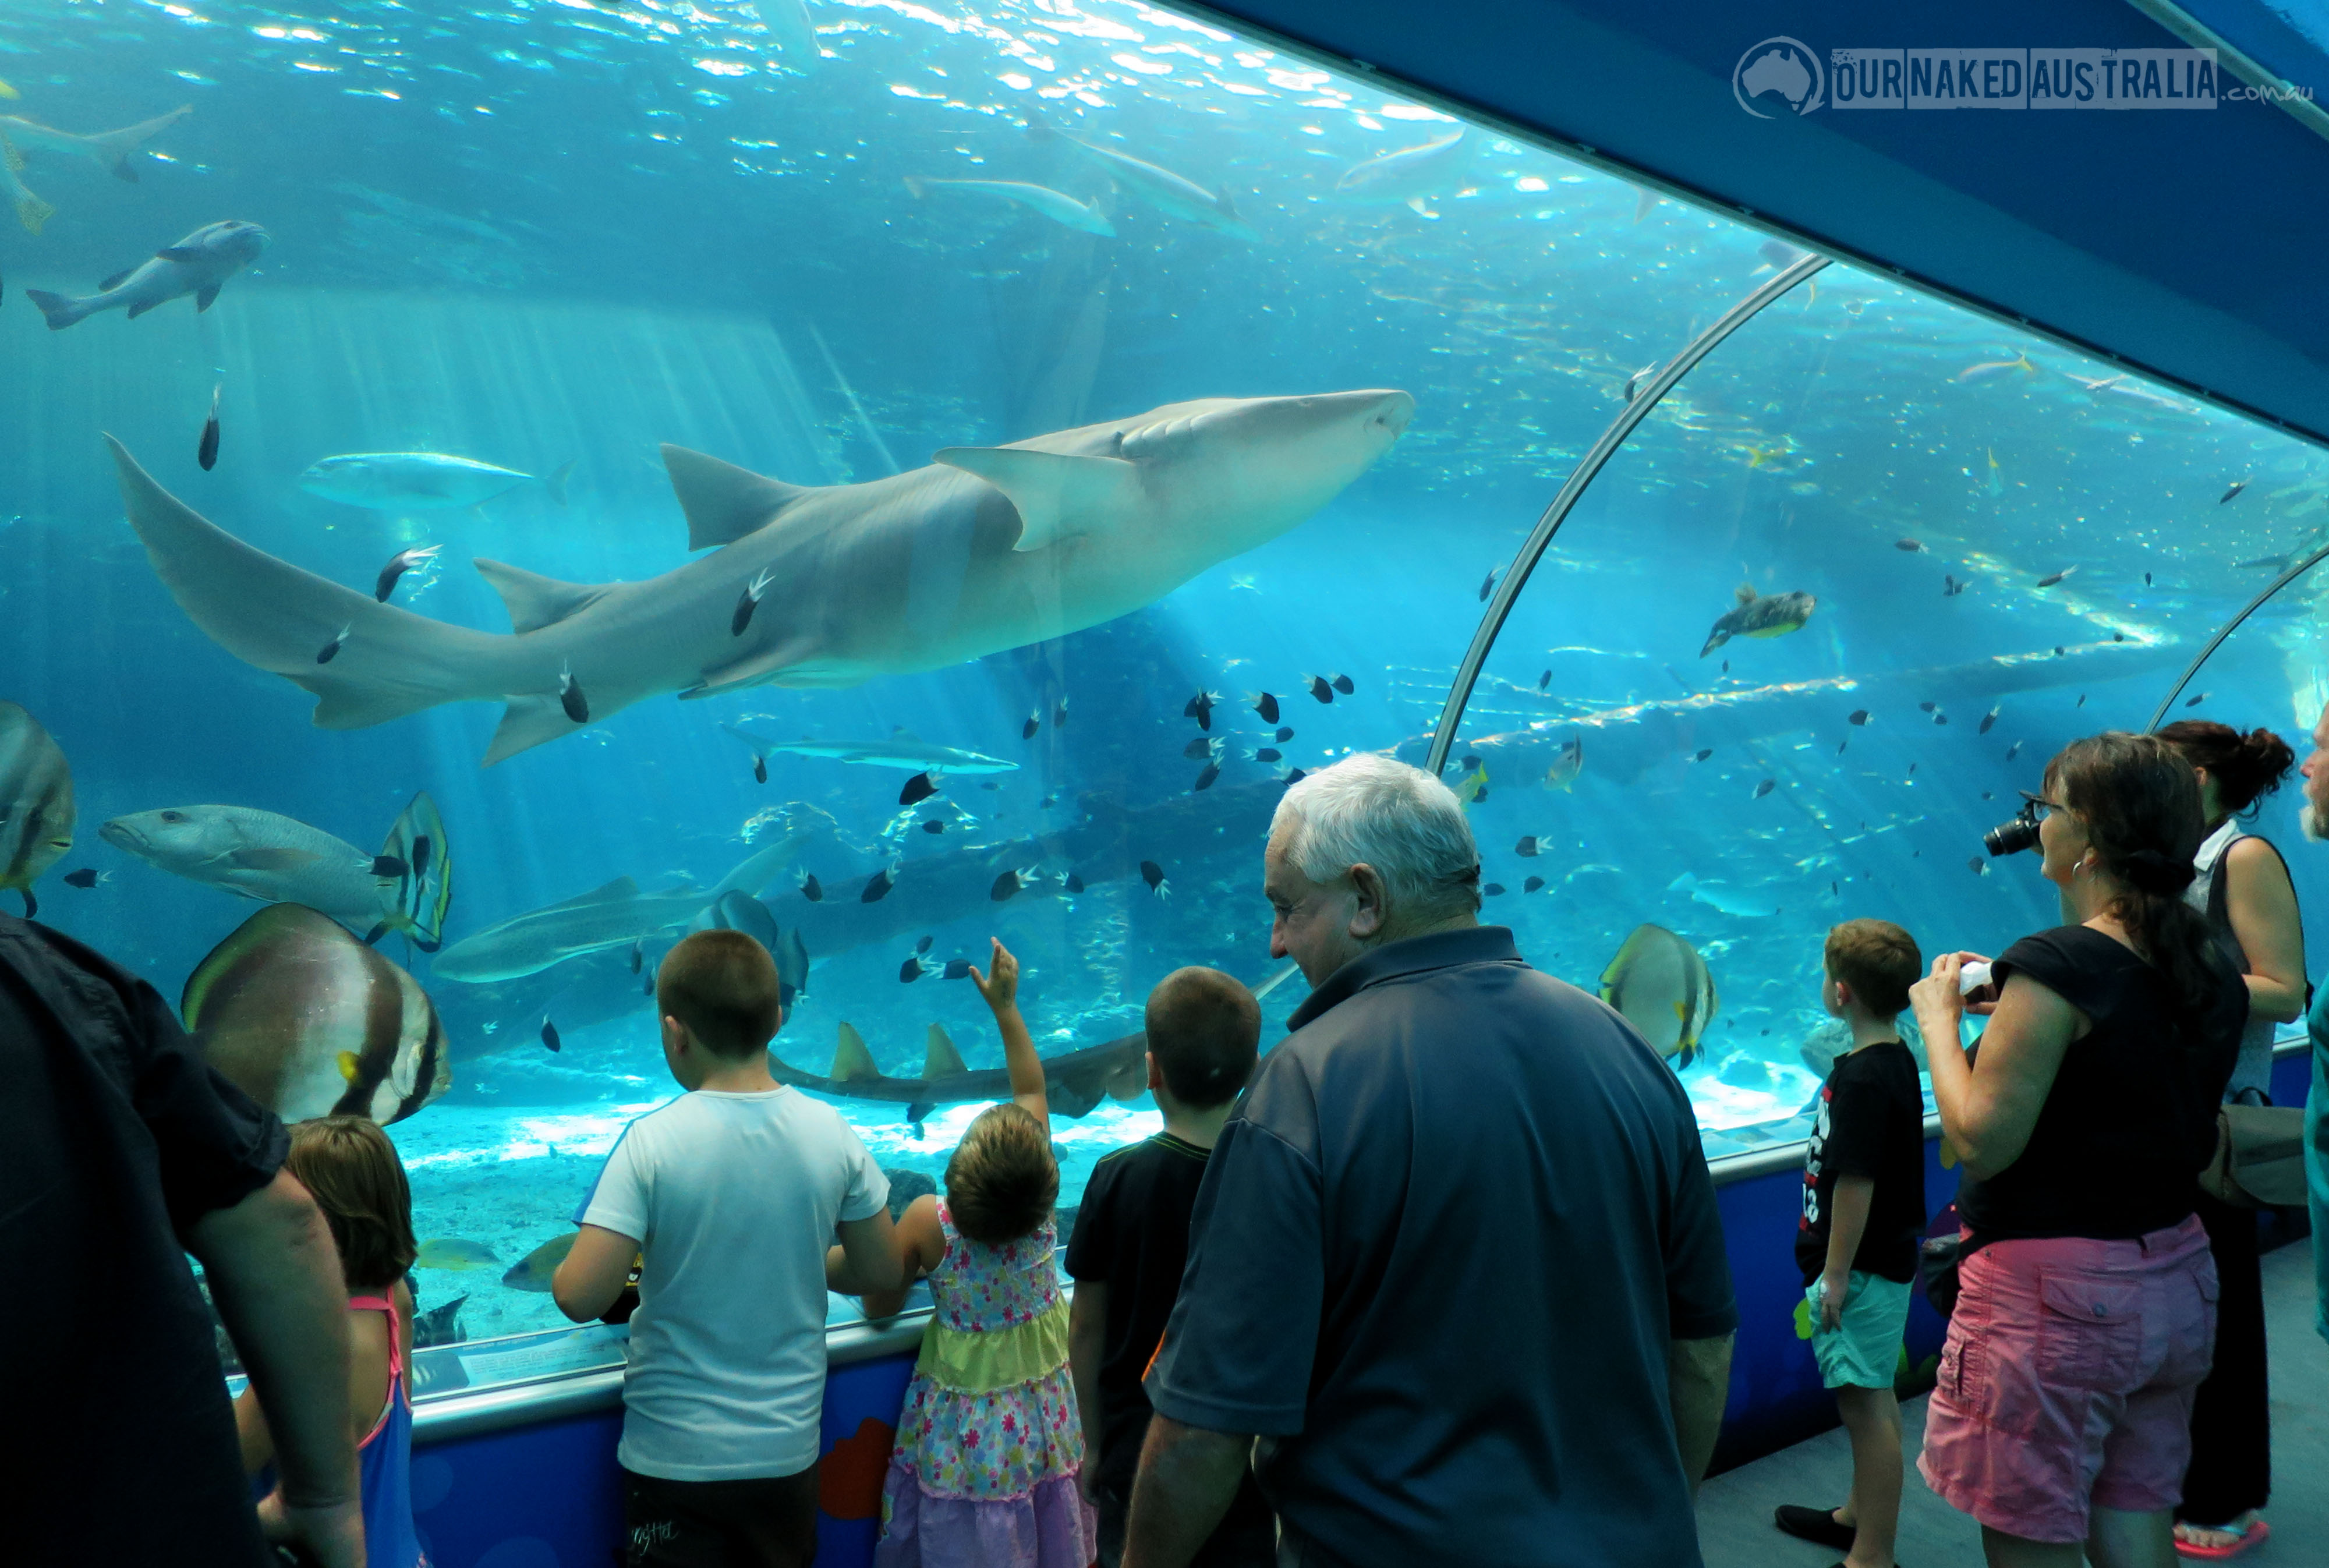 Reef HQ Aquarium Townsville, Attraction : Reef HQ Great Barrier Reef Aquarium | Our Naked Australia